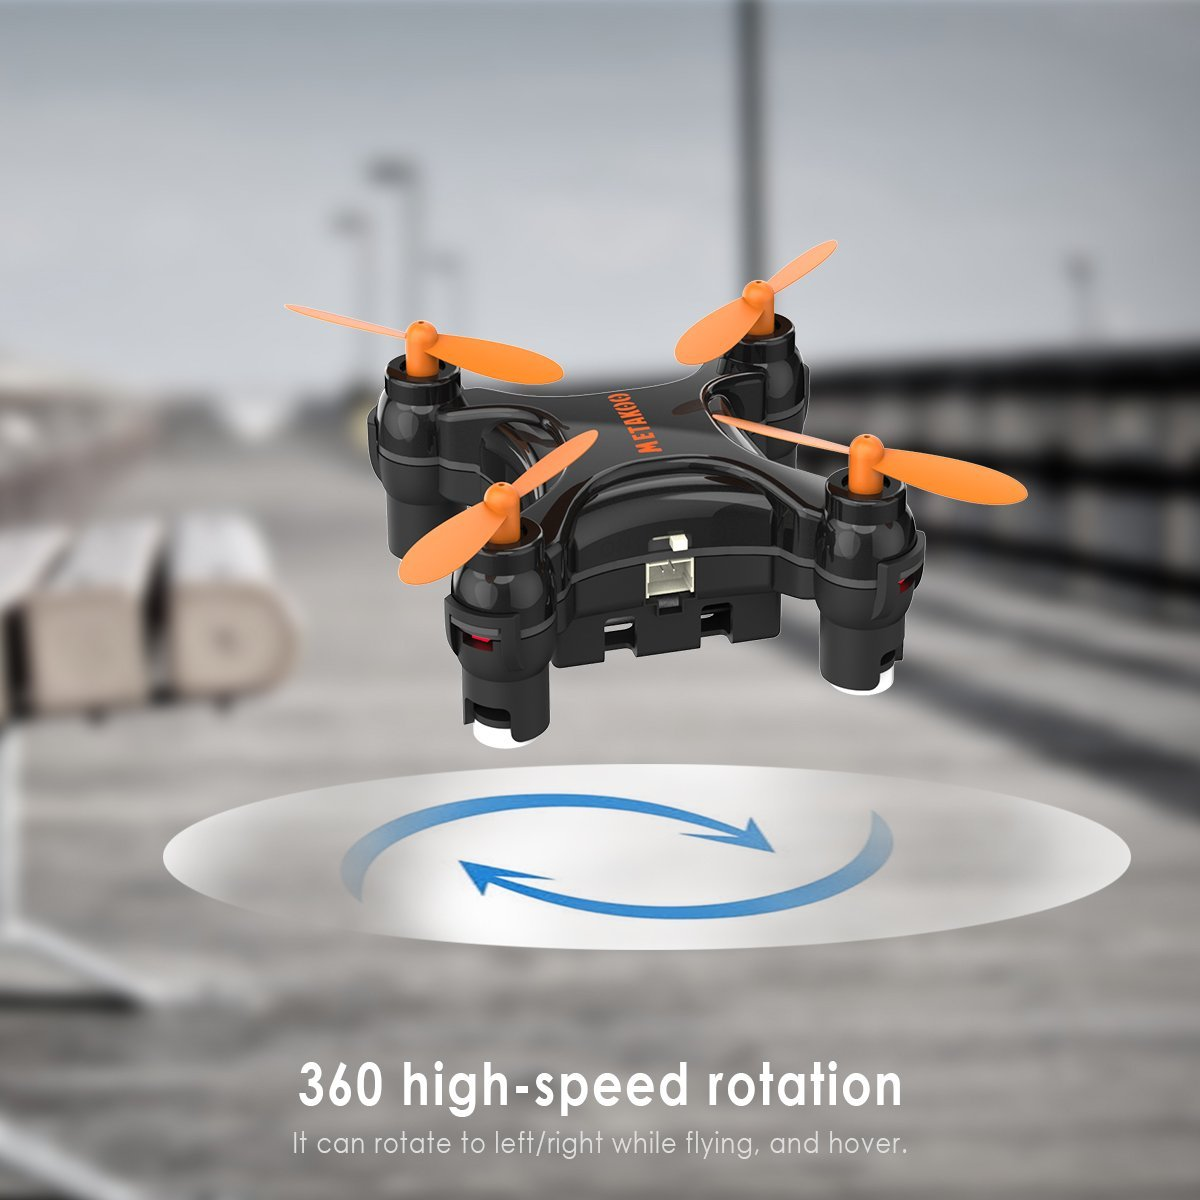 Metakoo Bee Happens To Be The Worlds First Mini Rc Quadcopter With Programmable Flipping Functions